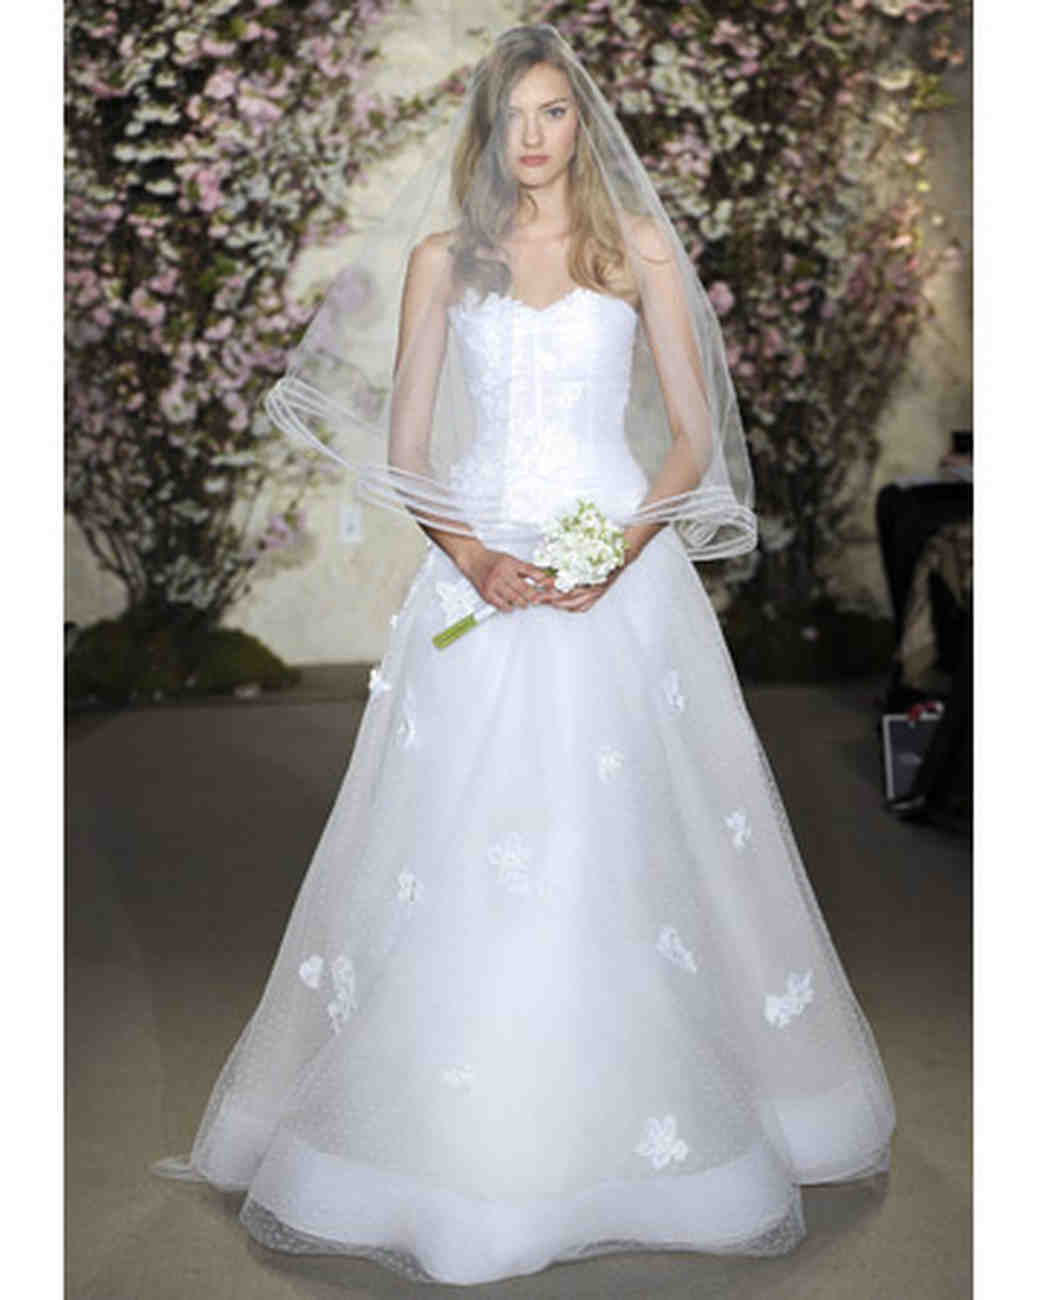 Oscar De La Renta Spring 2017 Wedding Dress Collection: Oscar De La Renta, Spring 2012 Collection